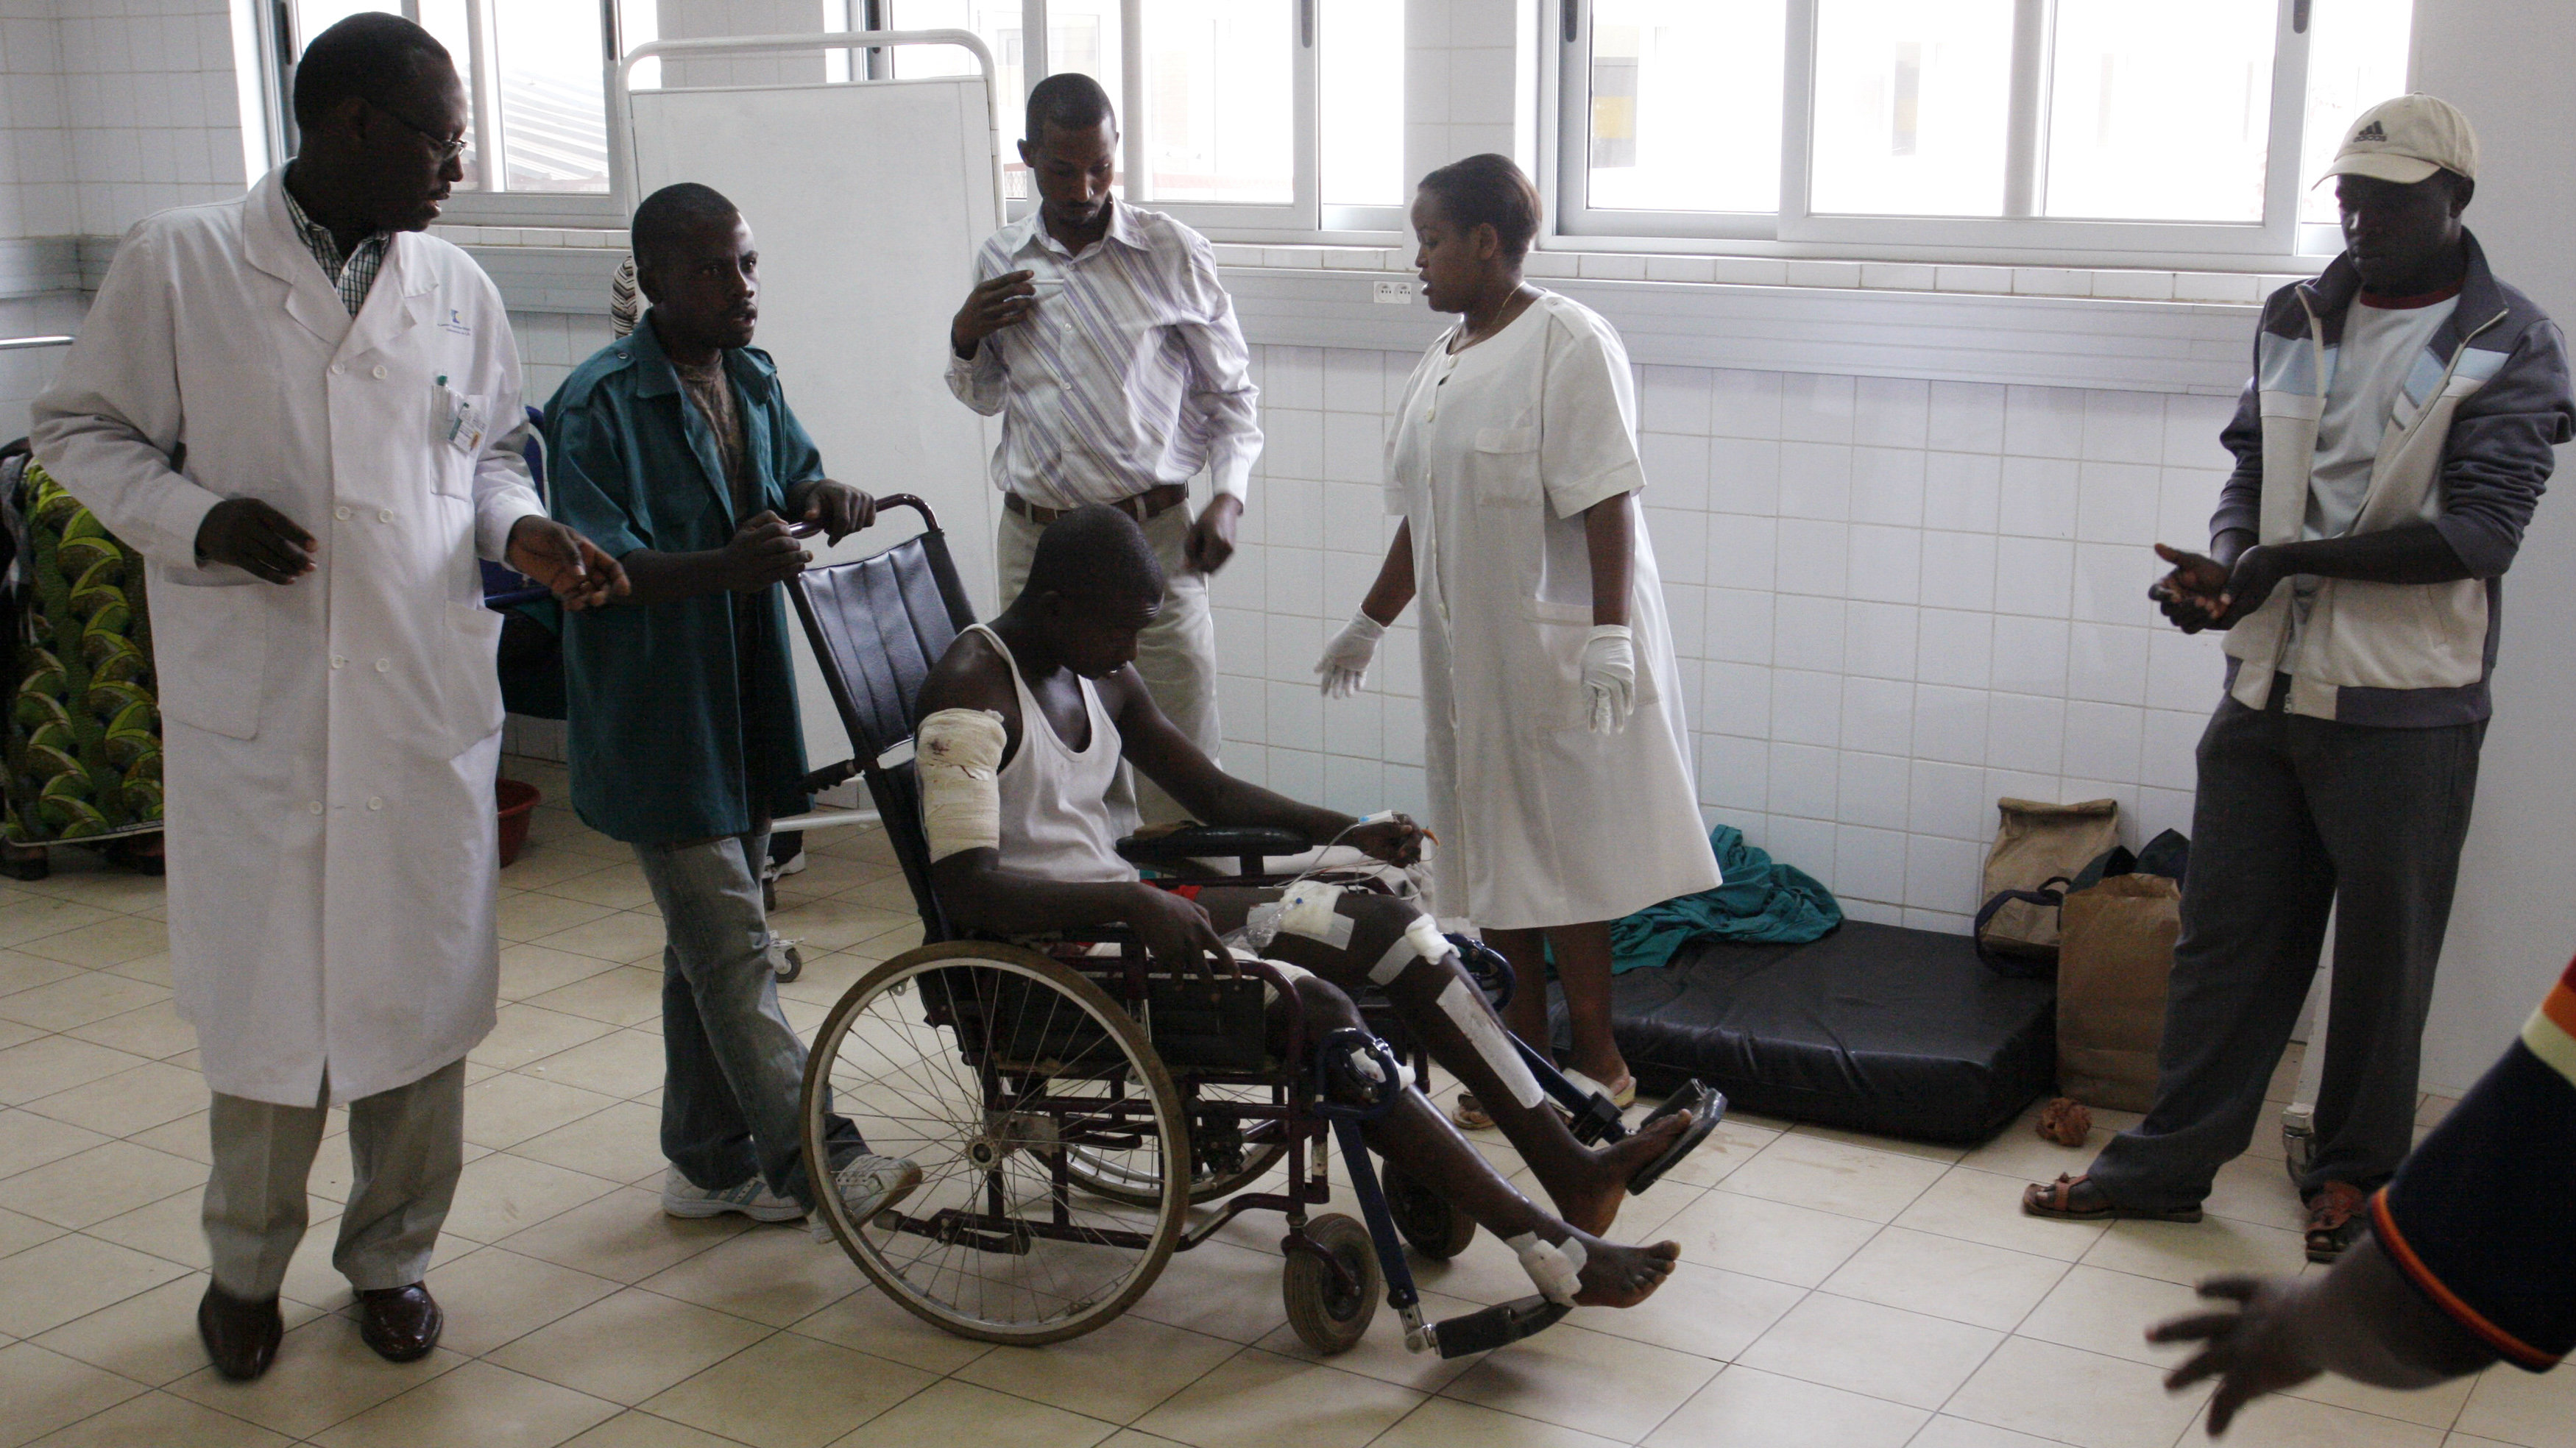 A grenade attack victim (in a wheelchair) is assisted inside a ward at the university hospital in Rwanda's capital Kigali August 12, 2010. Incumbent Paul Kagame won 93 percent of the votes in Rwanda's presidential election, final results showed on Wednesday, after a campaign that critics said was marred by government repression. A grenade was thrown into a rush-hour crowd in the capital Kigali, wounding at least seven people. Analysts said the attack appeared to be aimed at producing a political crisis. REUTERS/Hereward Holland